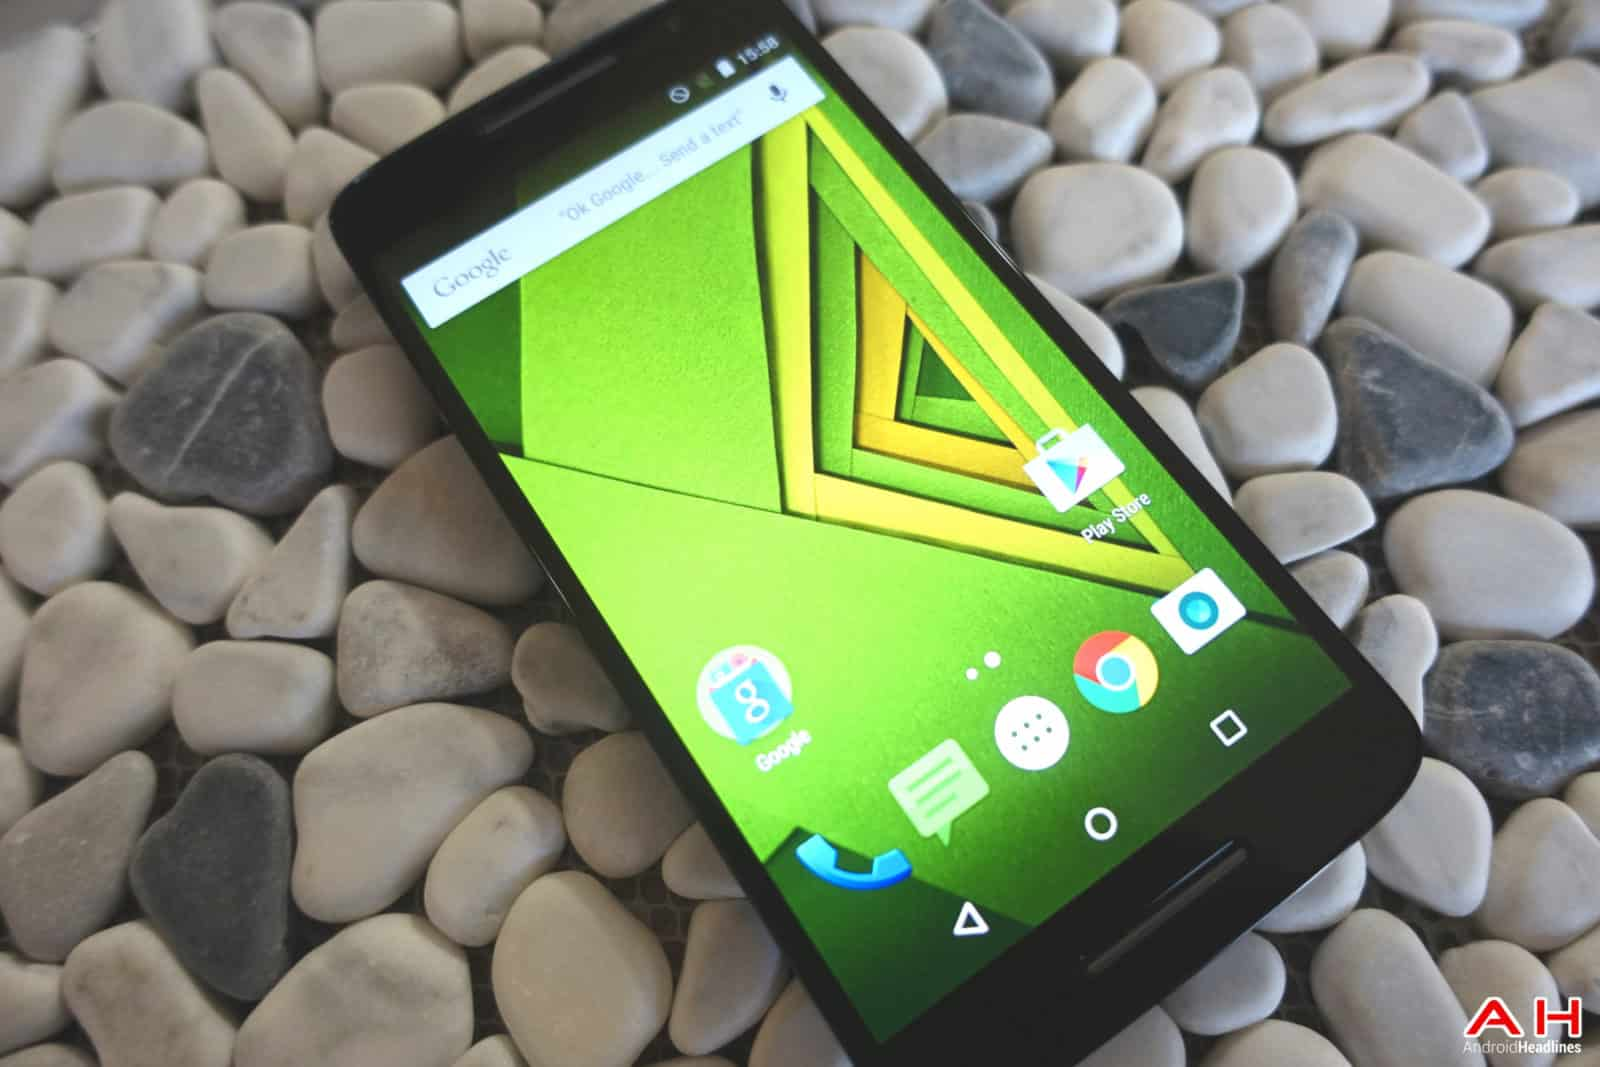 Moto x play now receiving android 711 nougat update moto x play now receiving android 711 nougat update ccuart Gallery